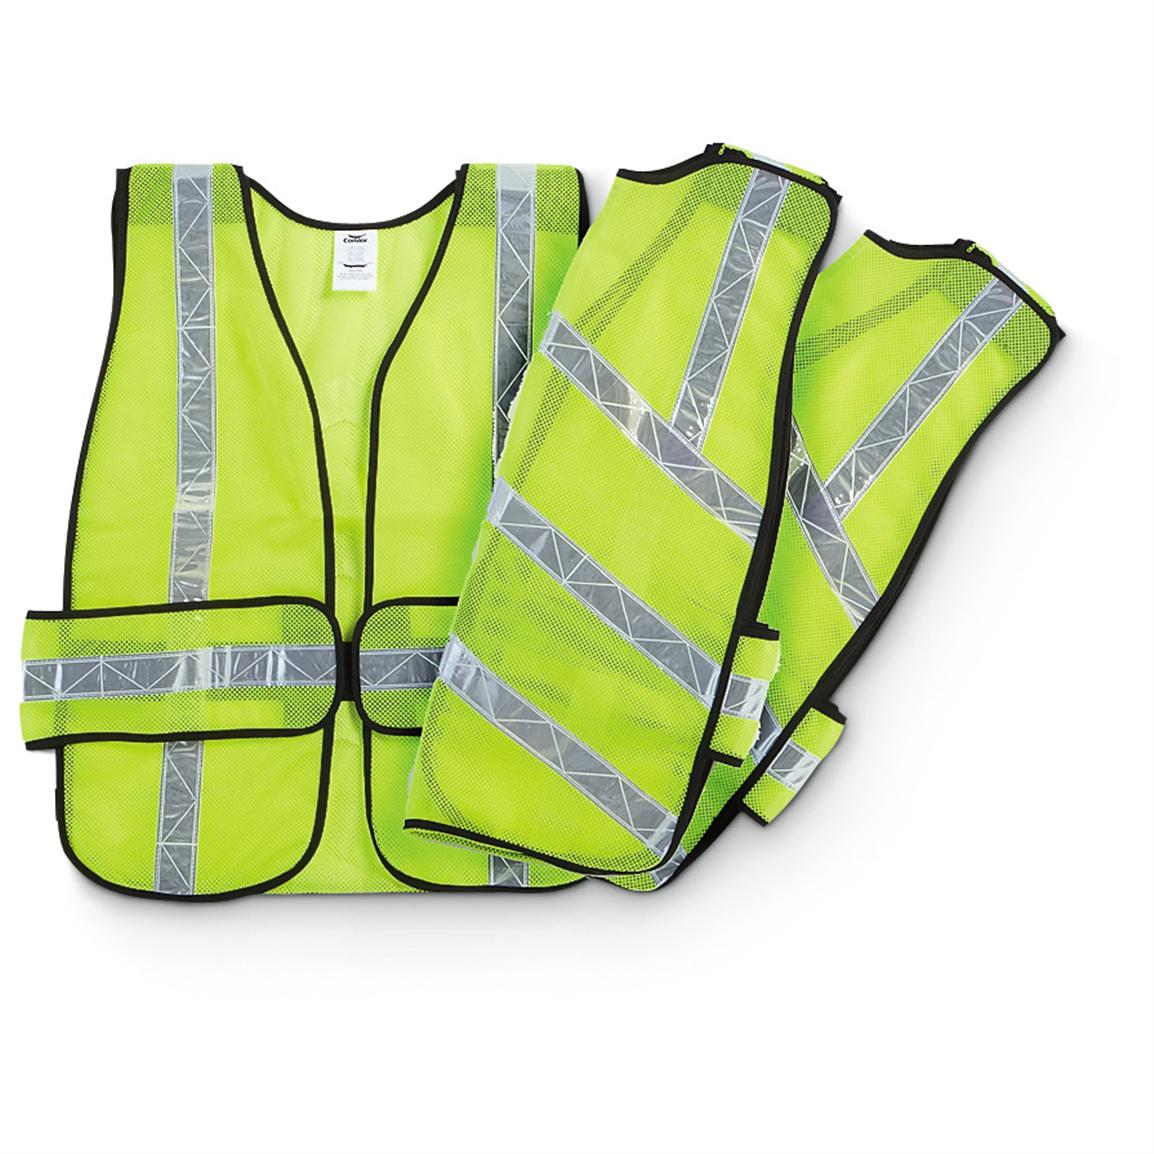 3-Pk. of Condor® High-visibility Safety Vests, Lime